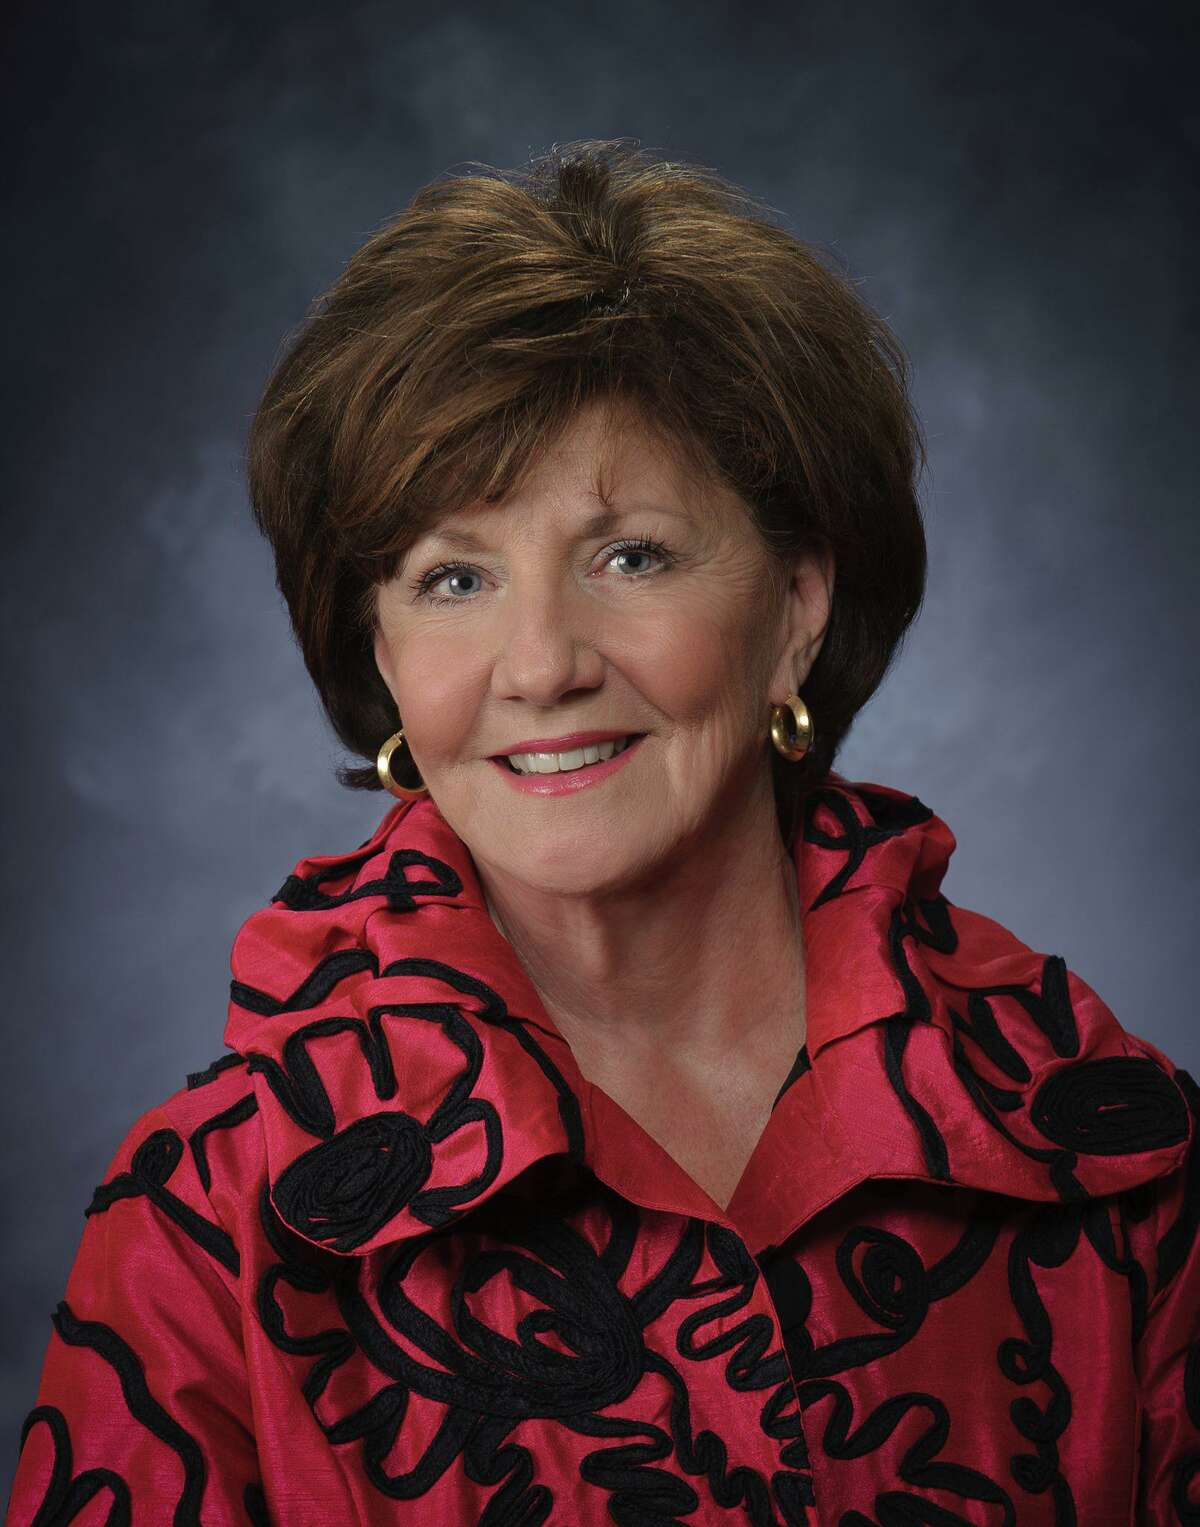 The Rose founder and CEO Dorothy Gibbons said the cancer center will host a virtual 5k, a drive-thru shrimp boil, a silent auction, a tennis tournament, and The Rose will even host their annual skydiving event, Jump for the Rosein October.